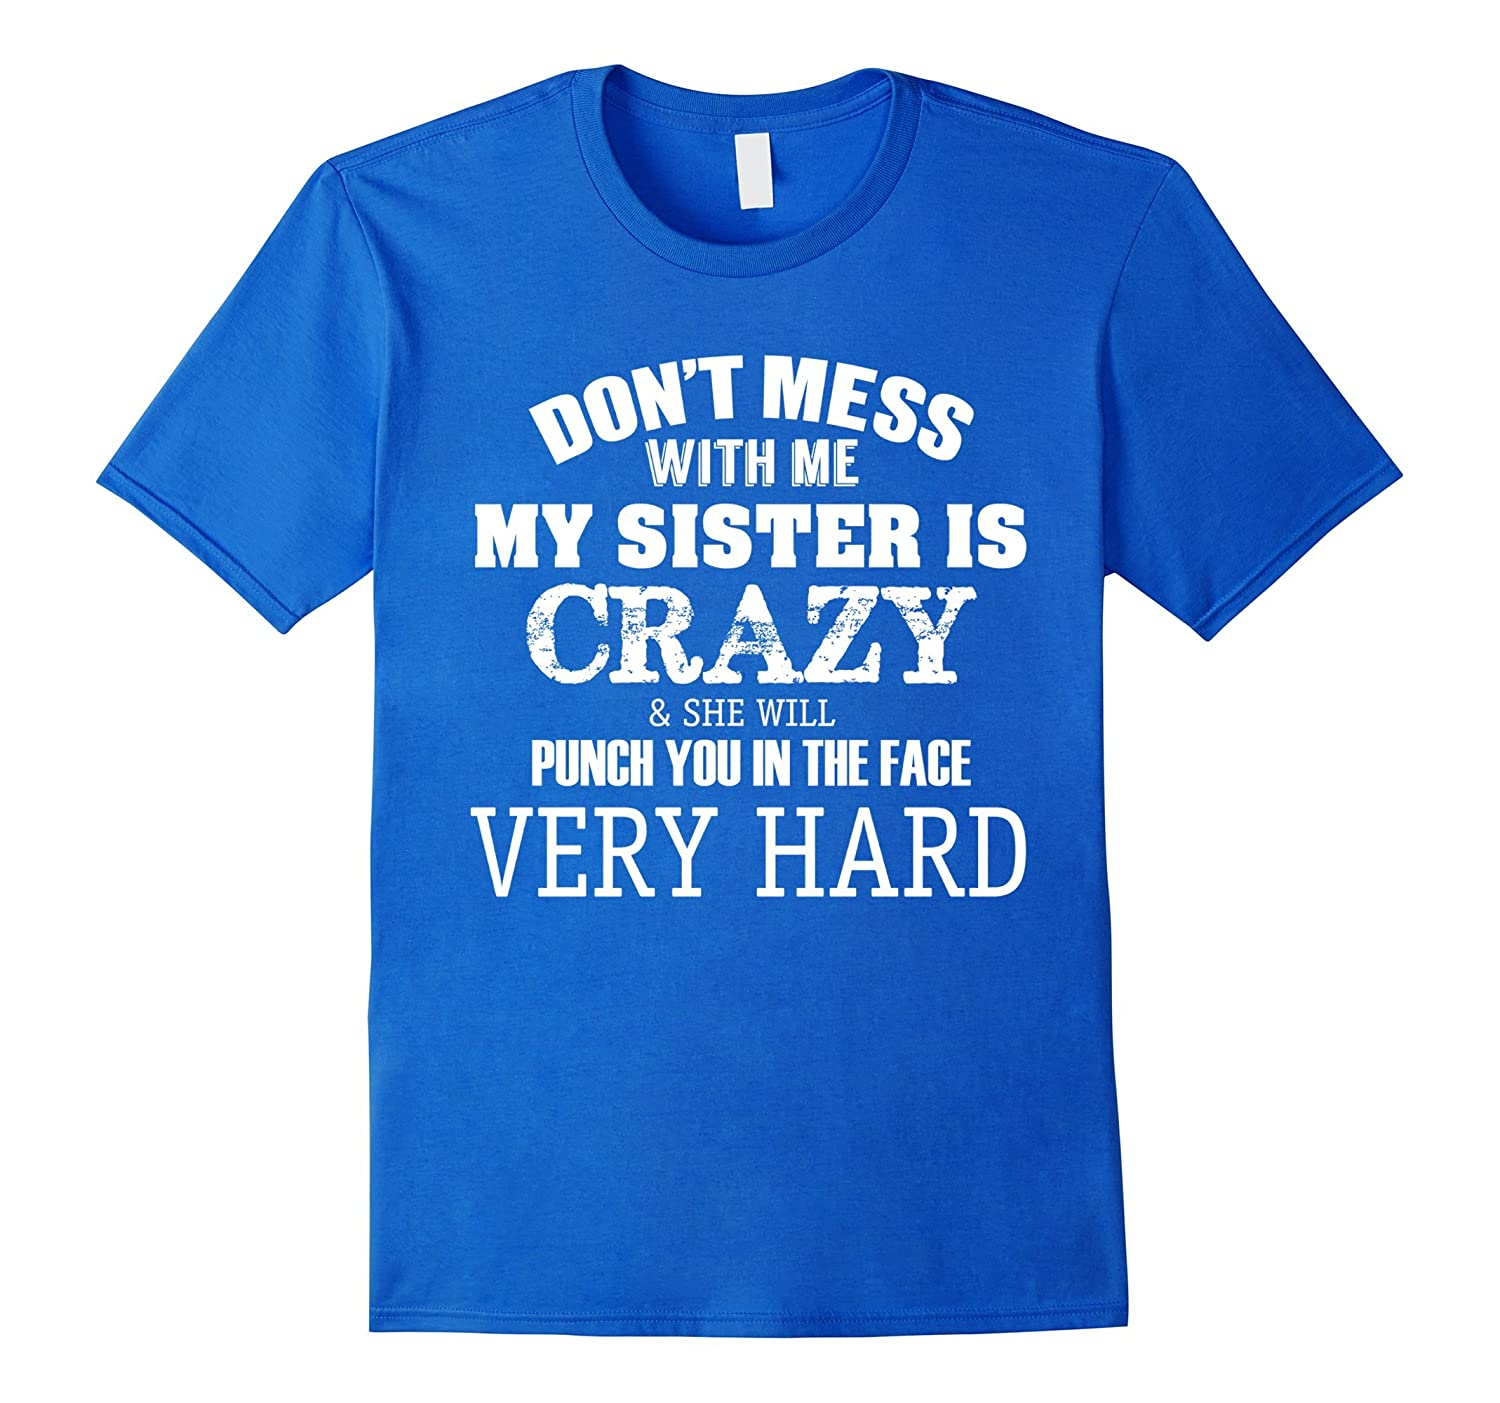 91c0ac779 Funny t shirt DON'T MESS WITH ME MY SISTER IS CRAZY T SHIRT-ANZ ...